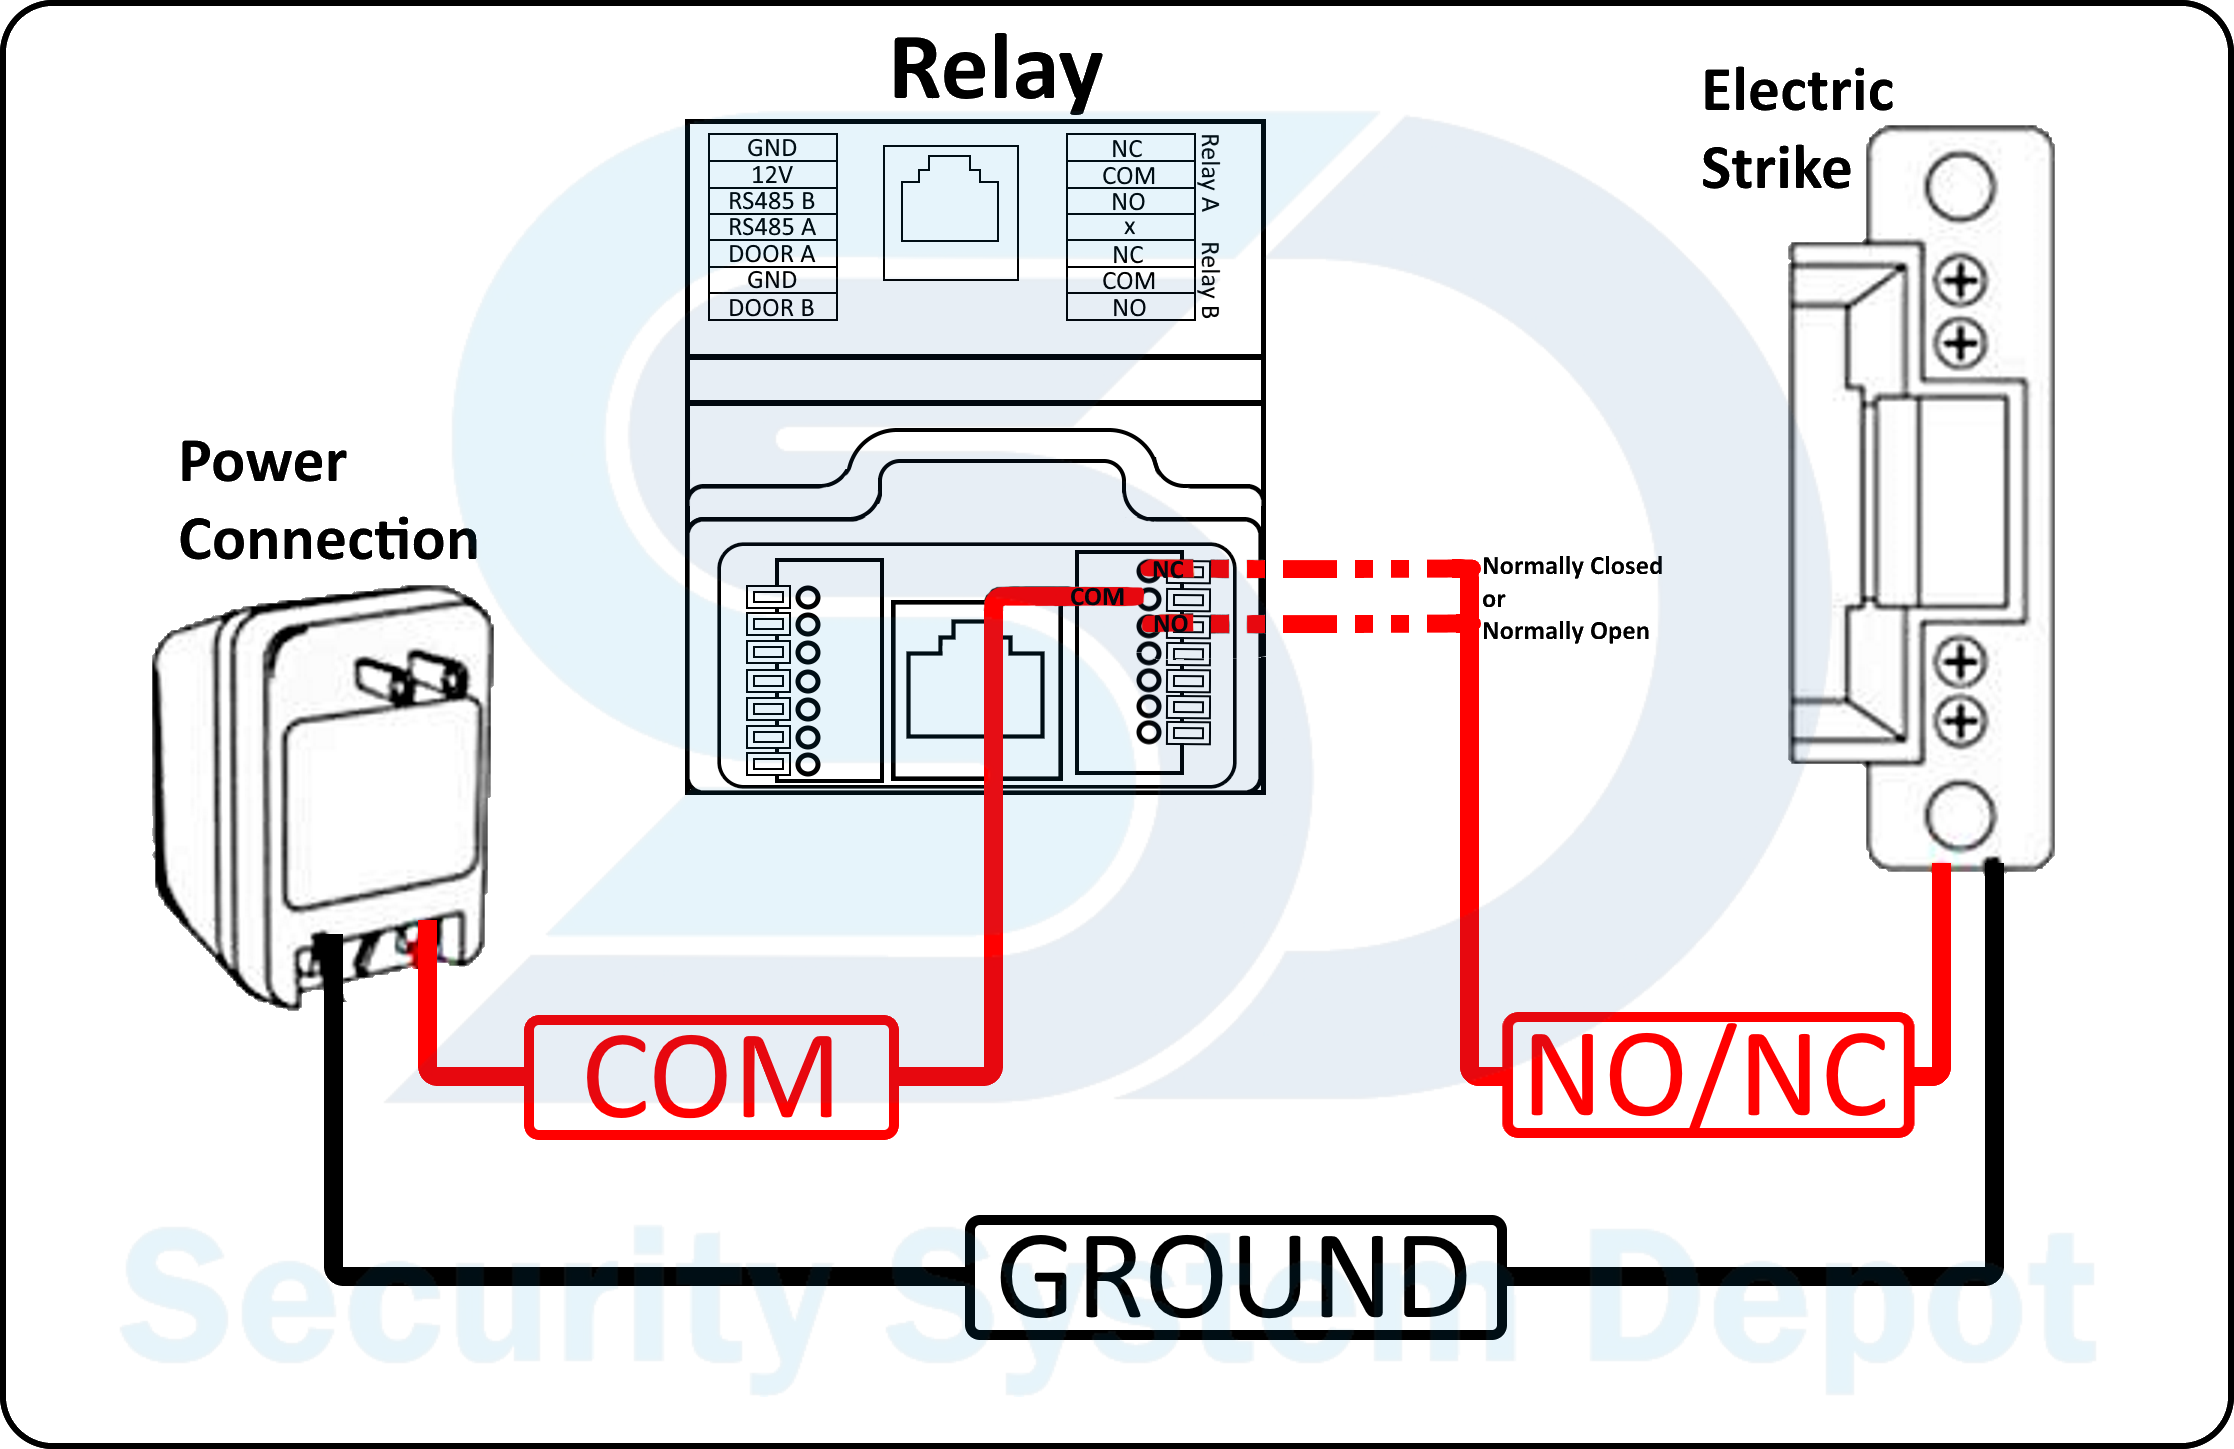 Wiring Diagram Together With Electric Door Strike Wiring Diagram